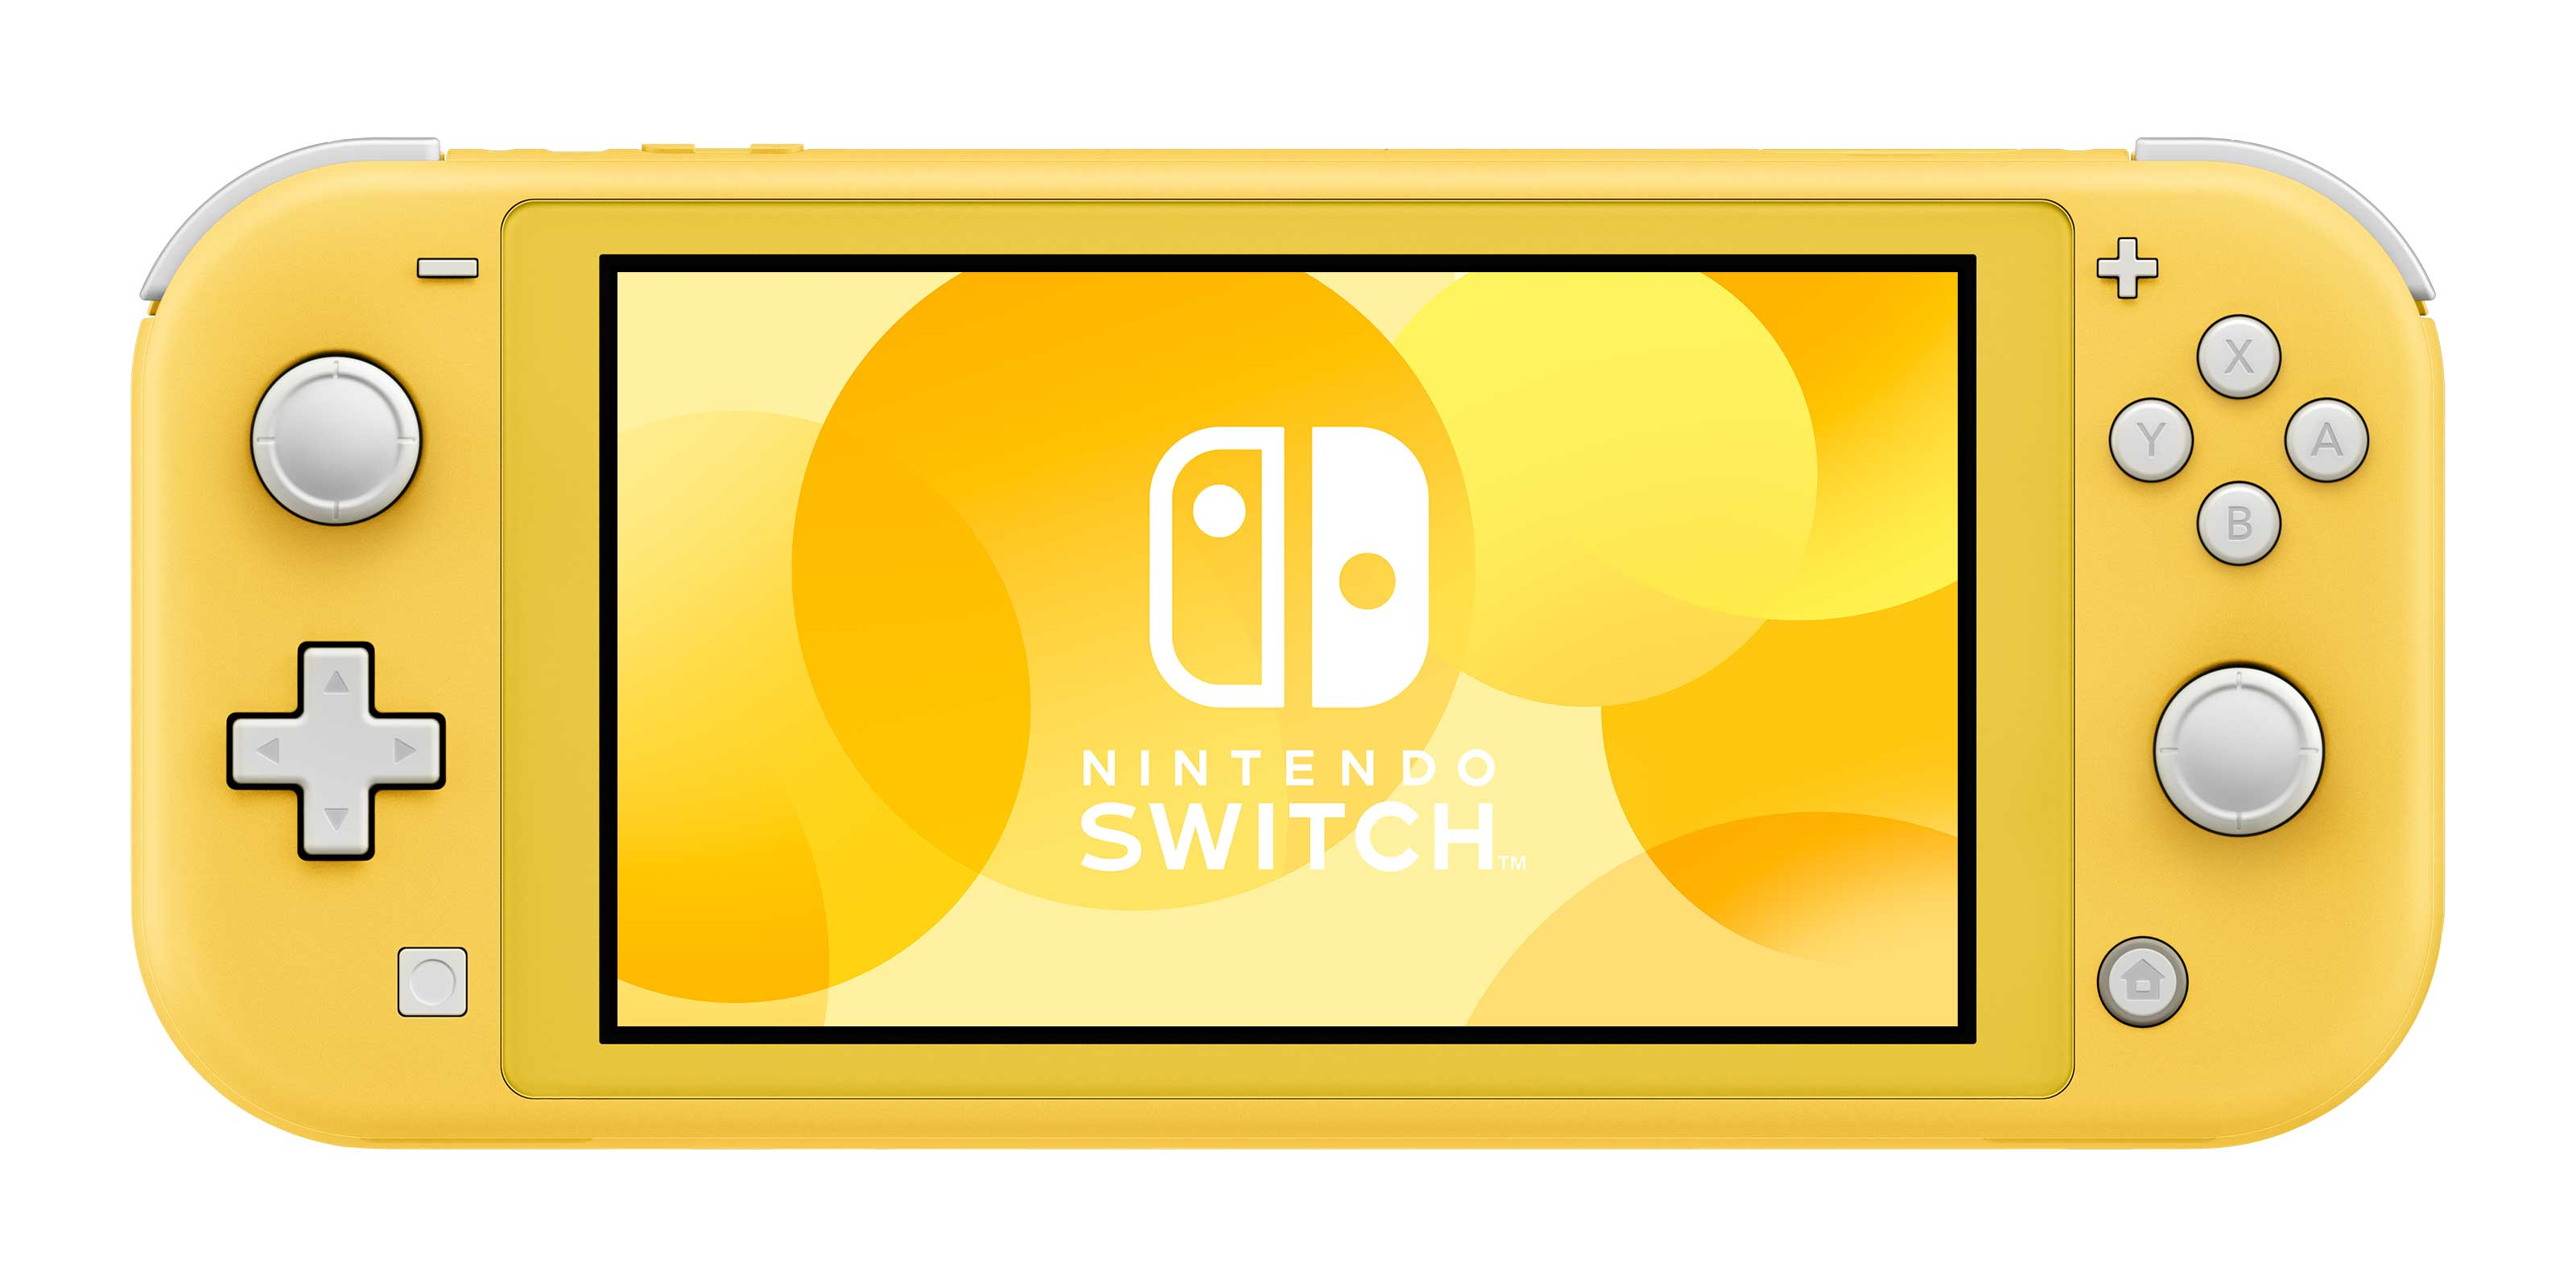 「Nintendo Switch Lite」【ゲーム機器】